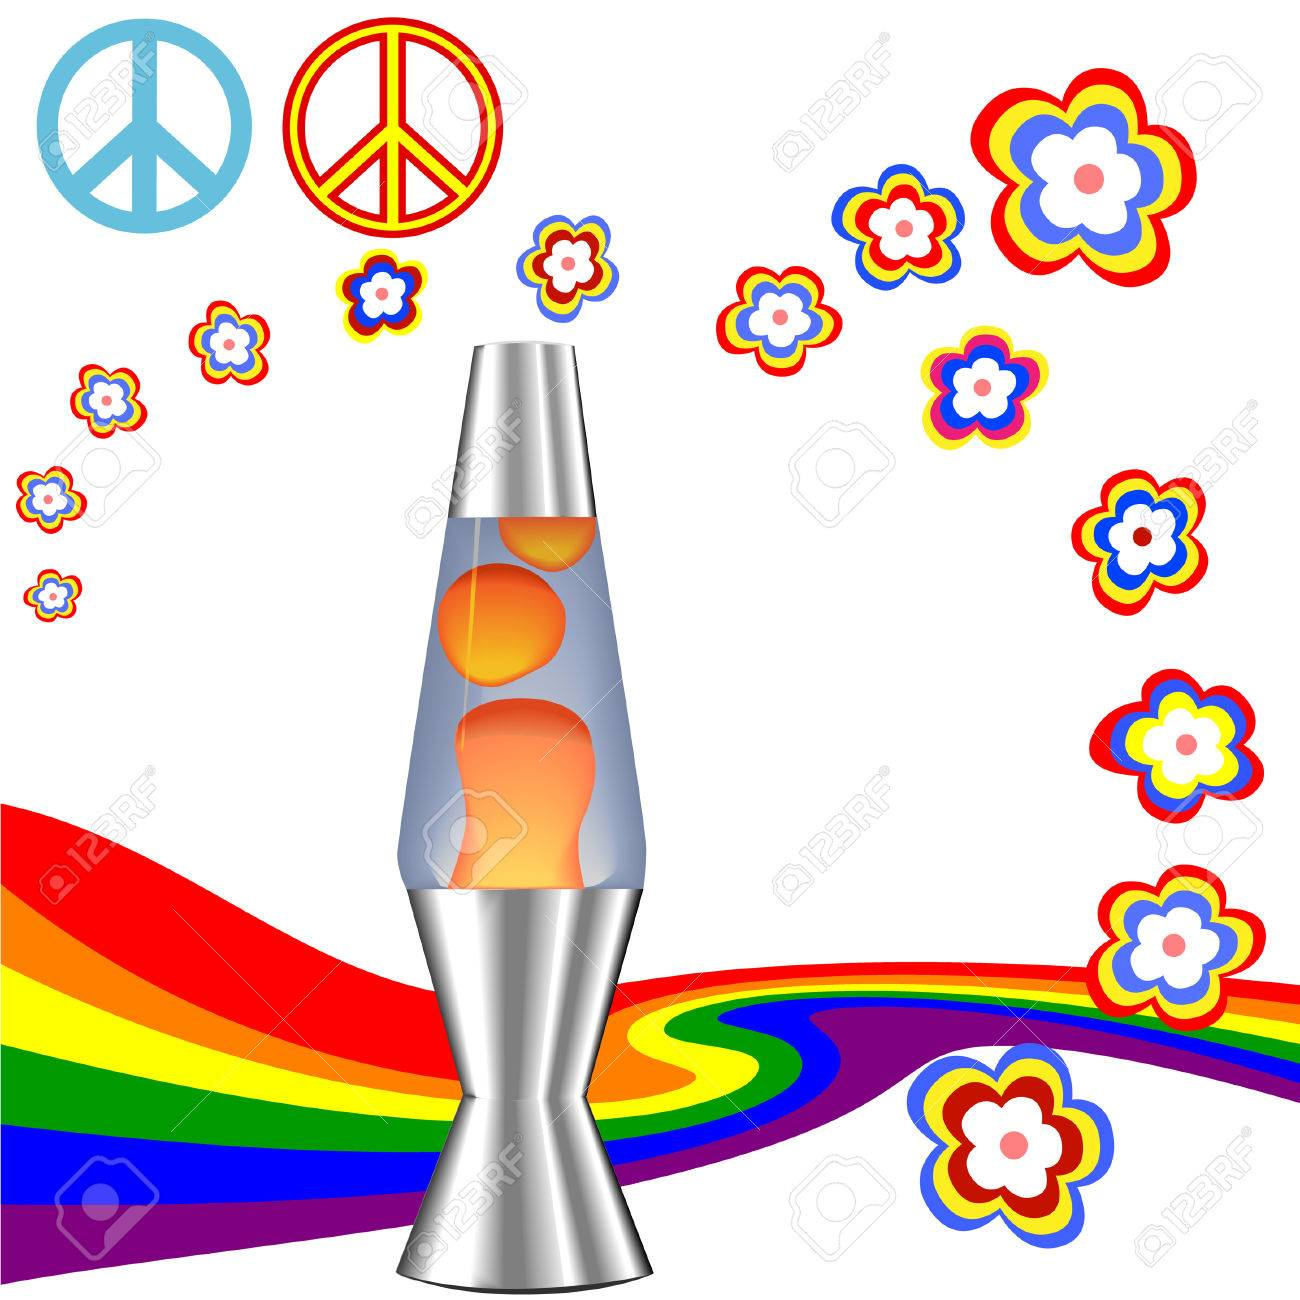 Lava lamp vector - A Psychedelic 60 S 70 S Hippie Kit With Red Orange Lava Lamp Retro Flower Power Rainbow